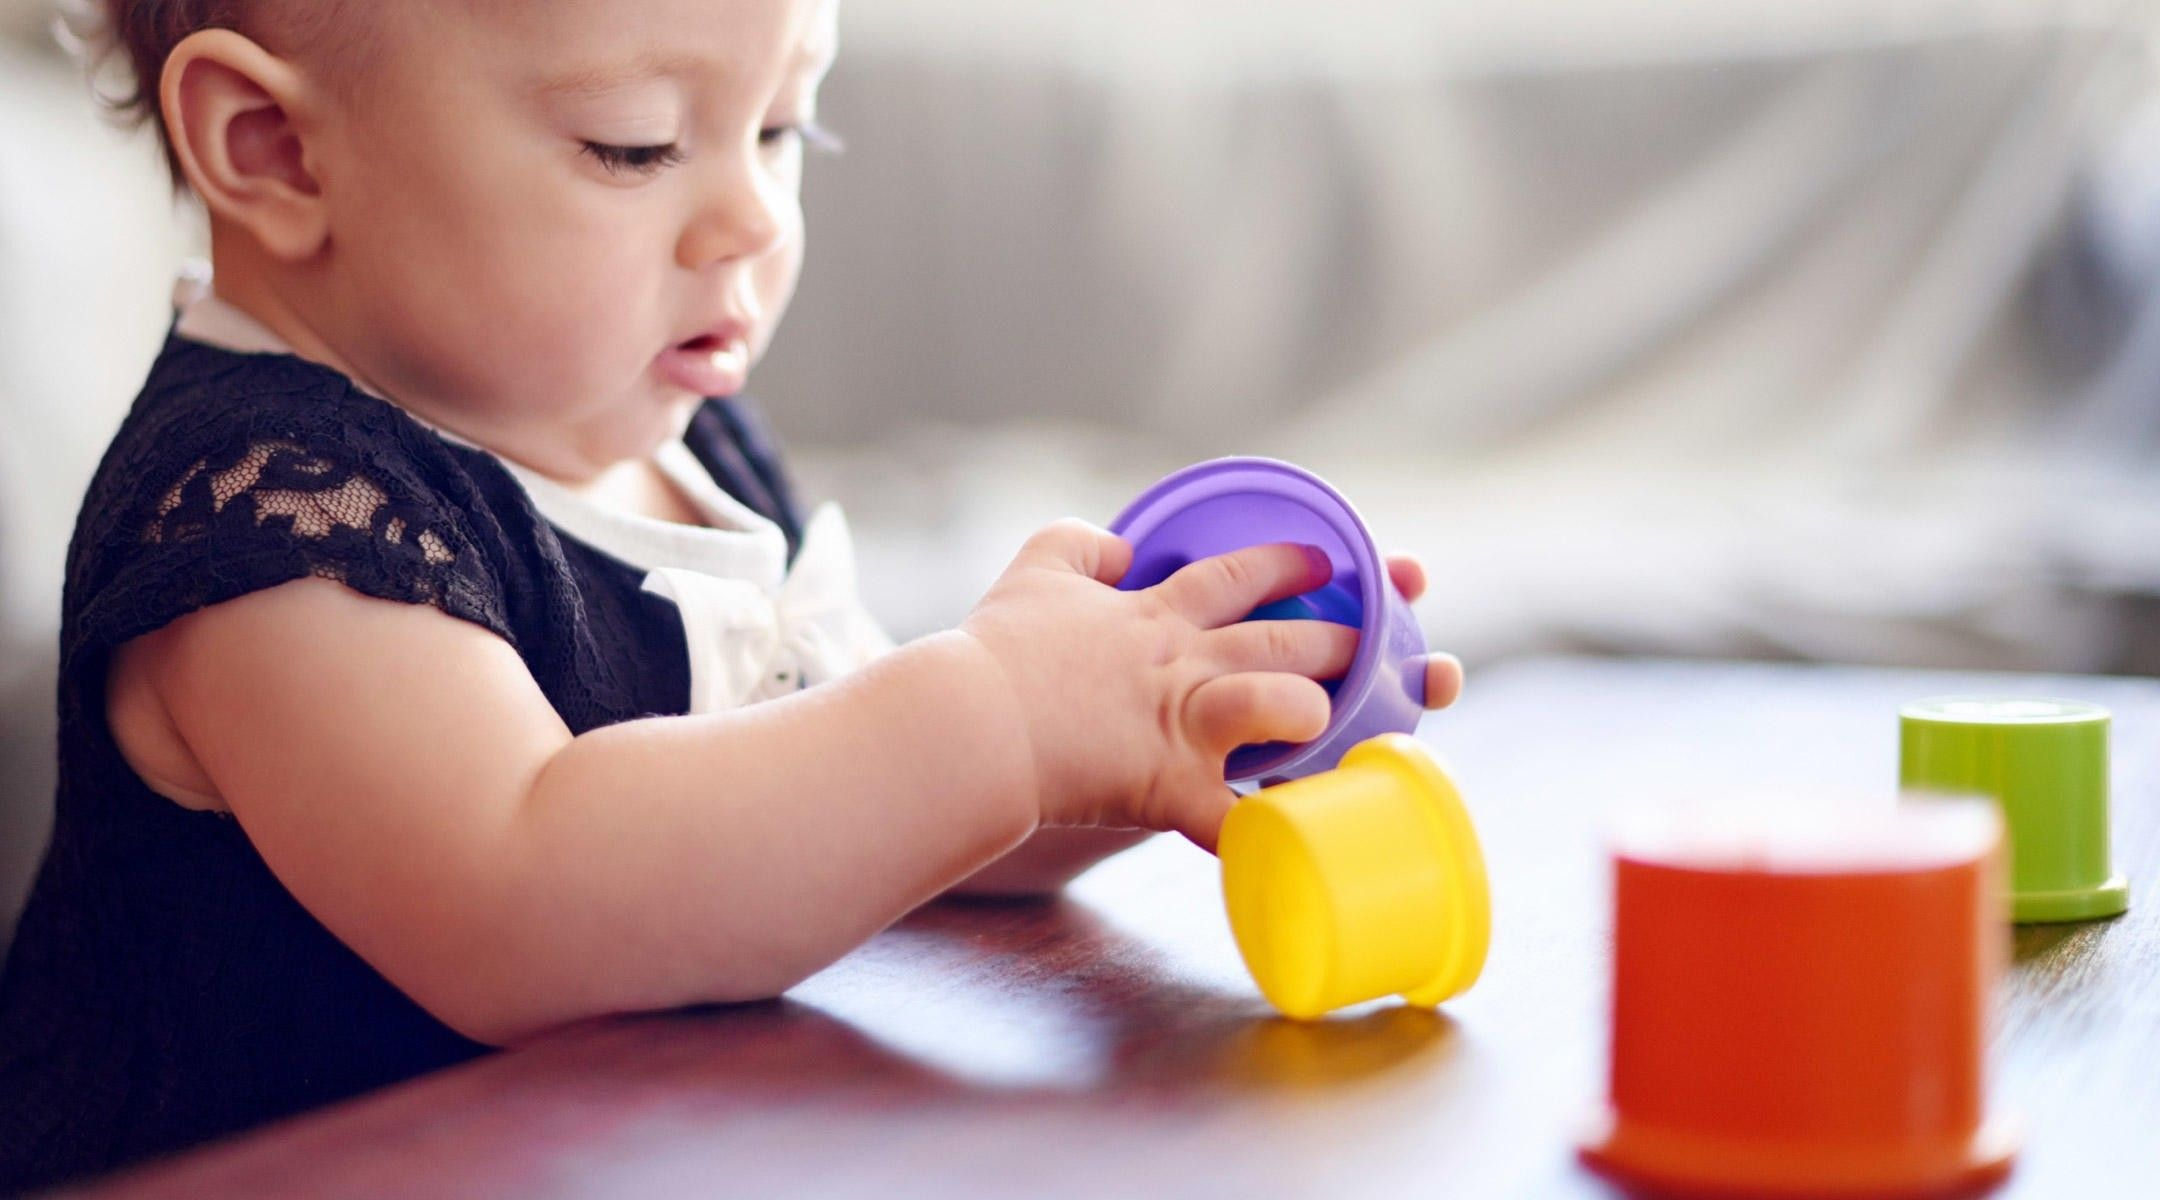 Baby playing with colourful cups